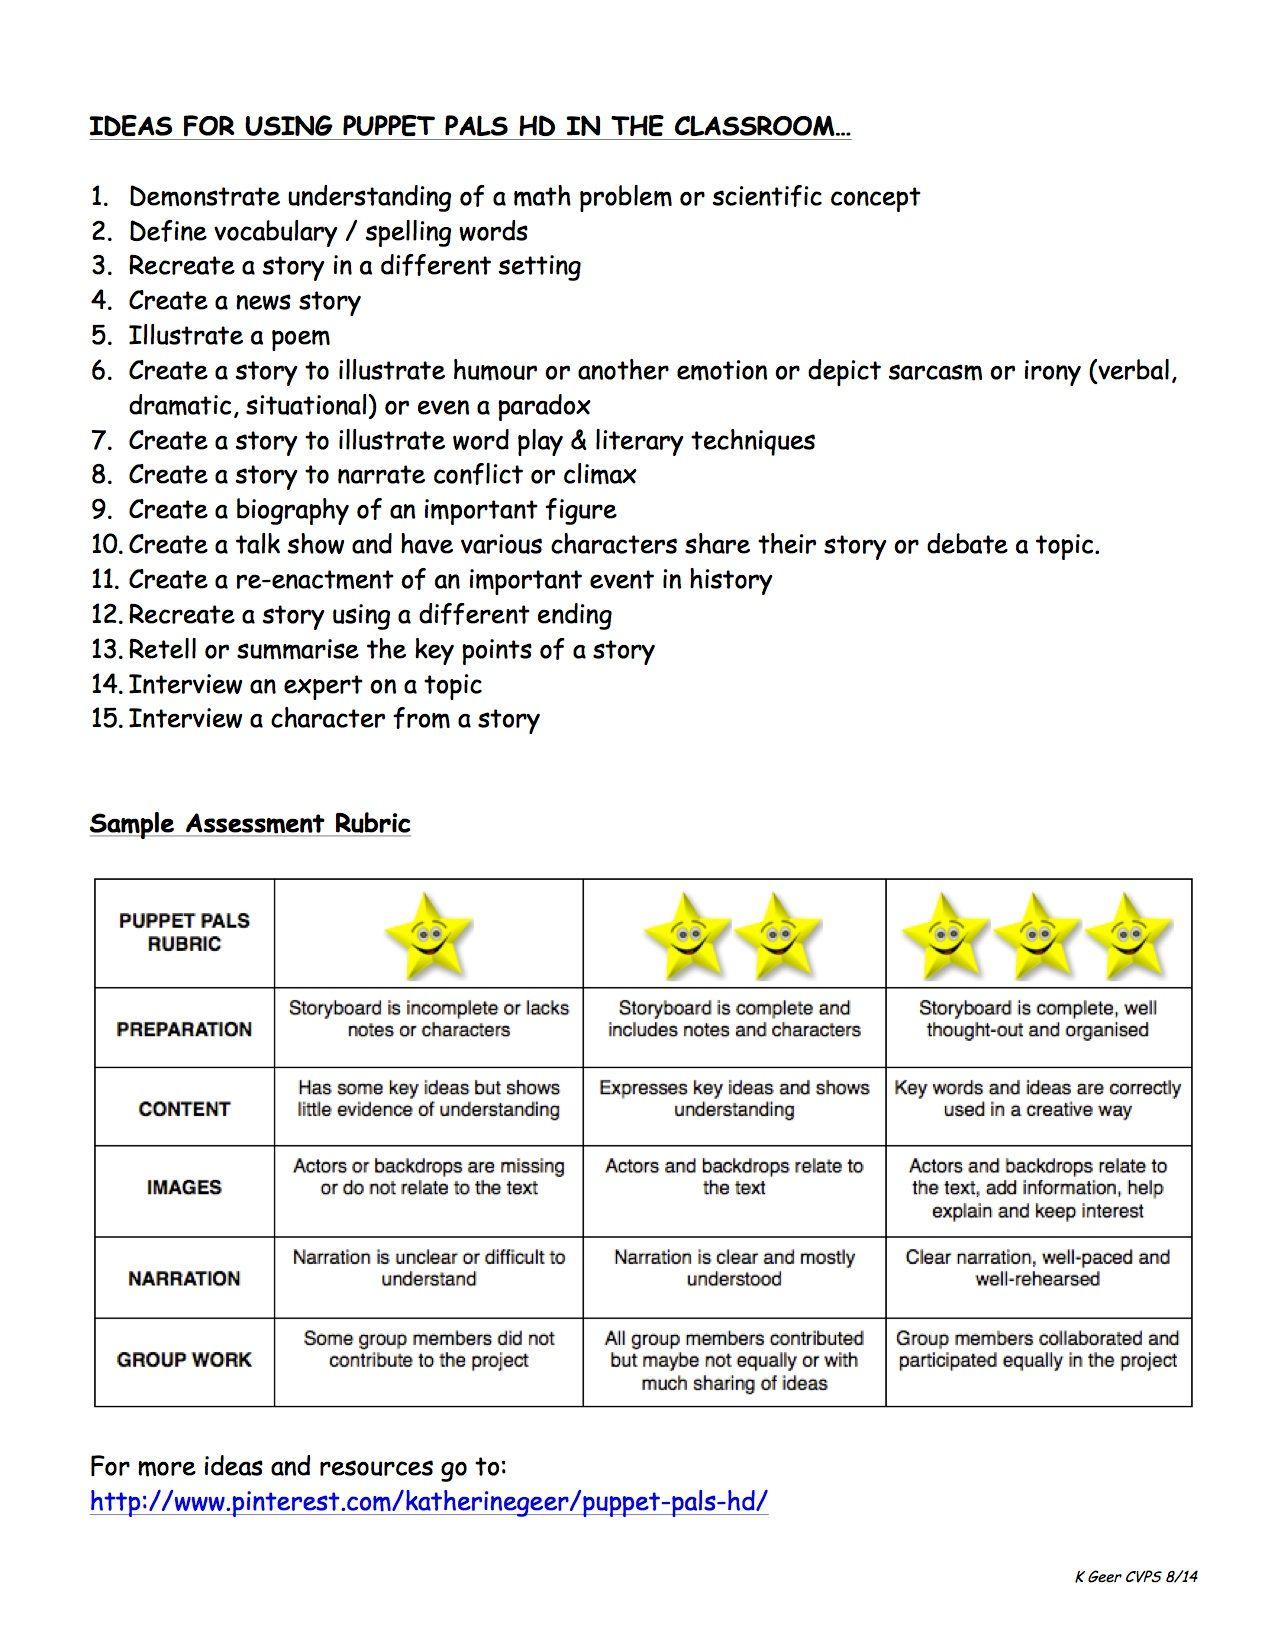 Puppet Pals Hd  Classroom Ideas Plus A Sample Assessment Rubric